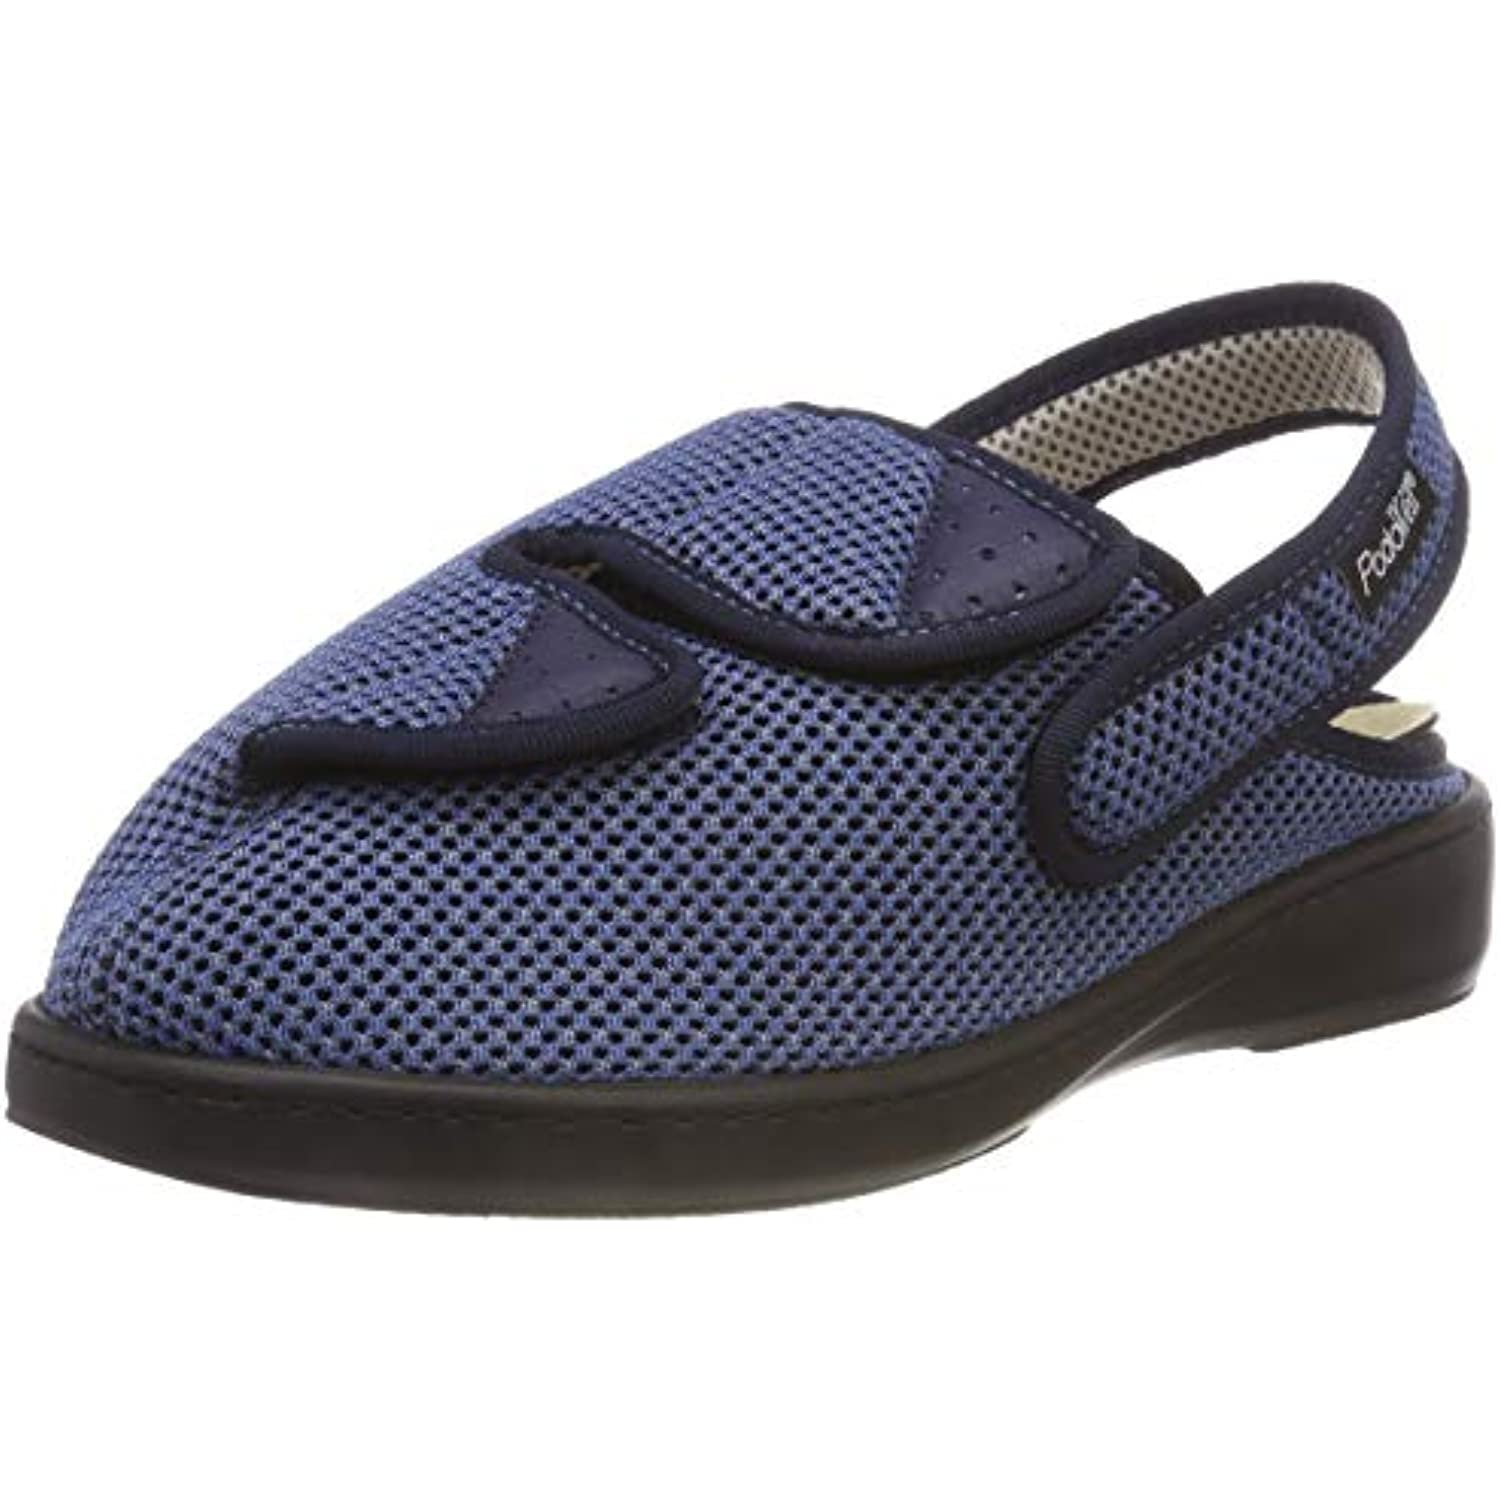 Podowell Arry, Chaussons Chaussons Arry, Bas Mixte Adulte, Jean 7314310 , EU - B07GRF988S - 5558a7